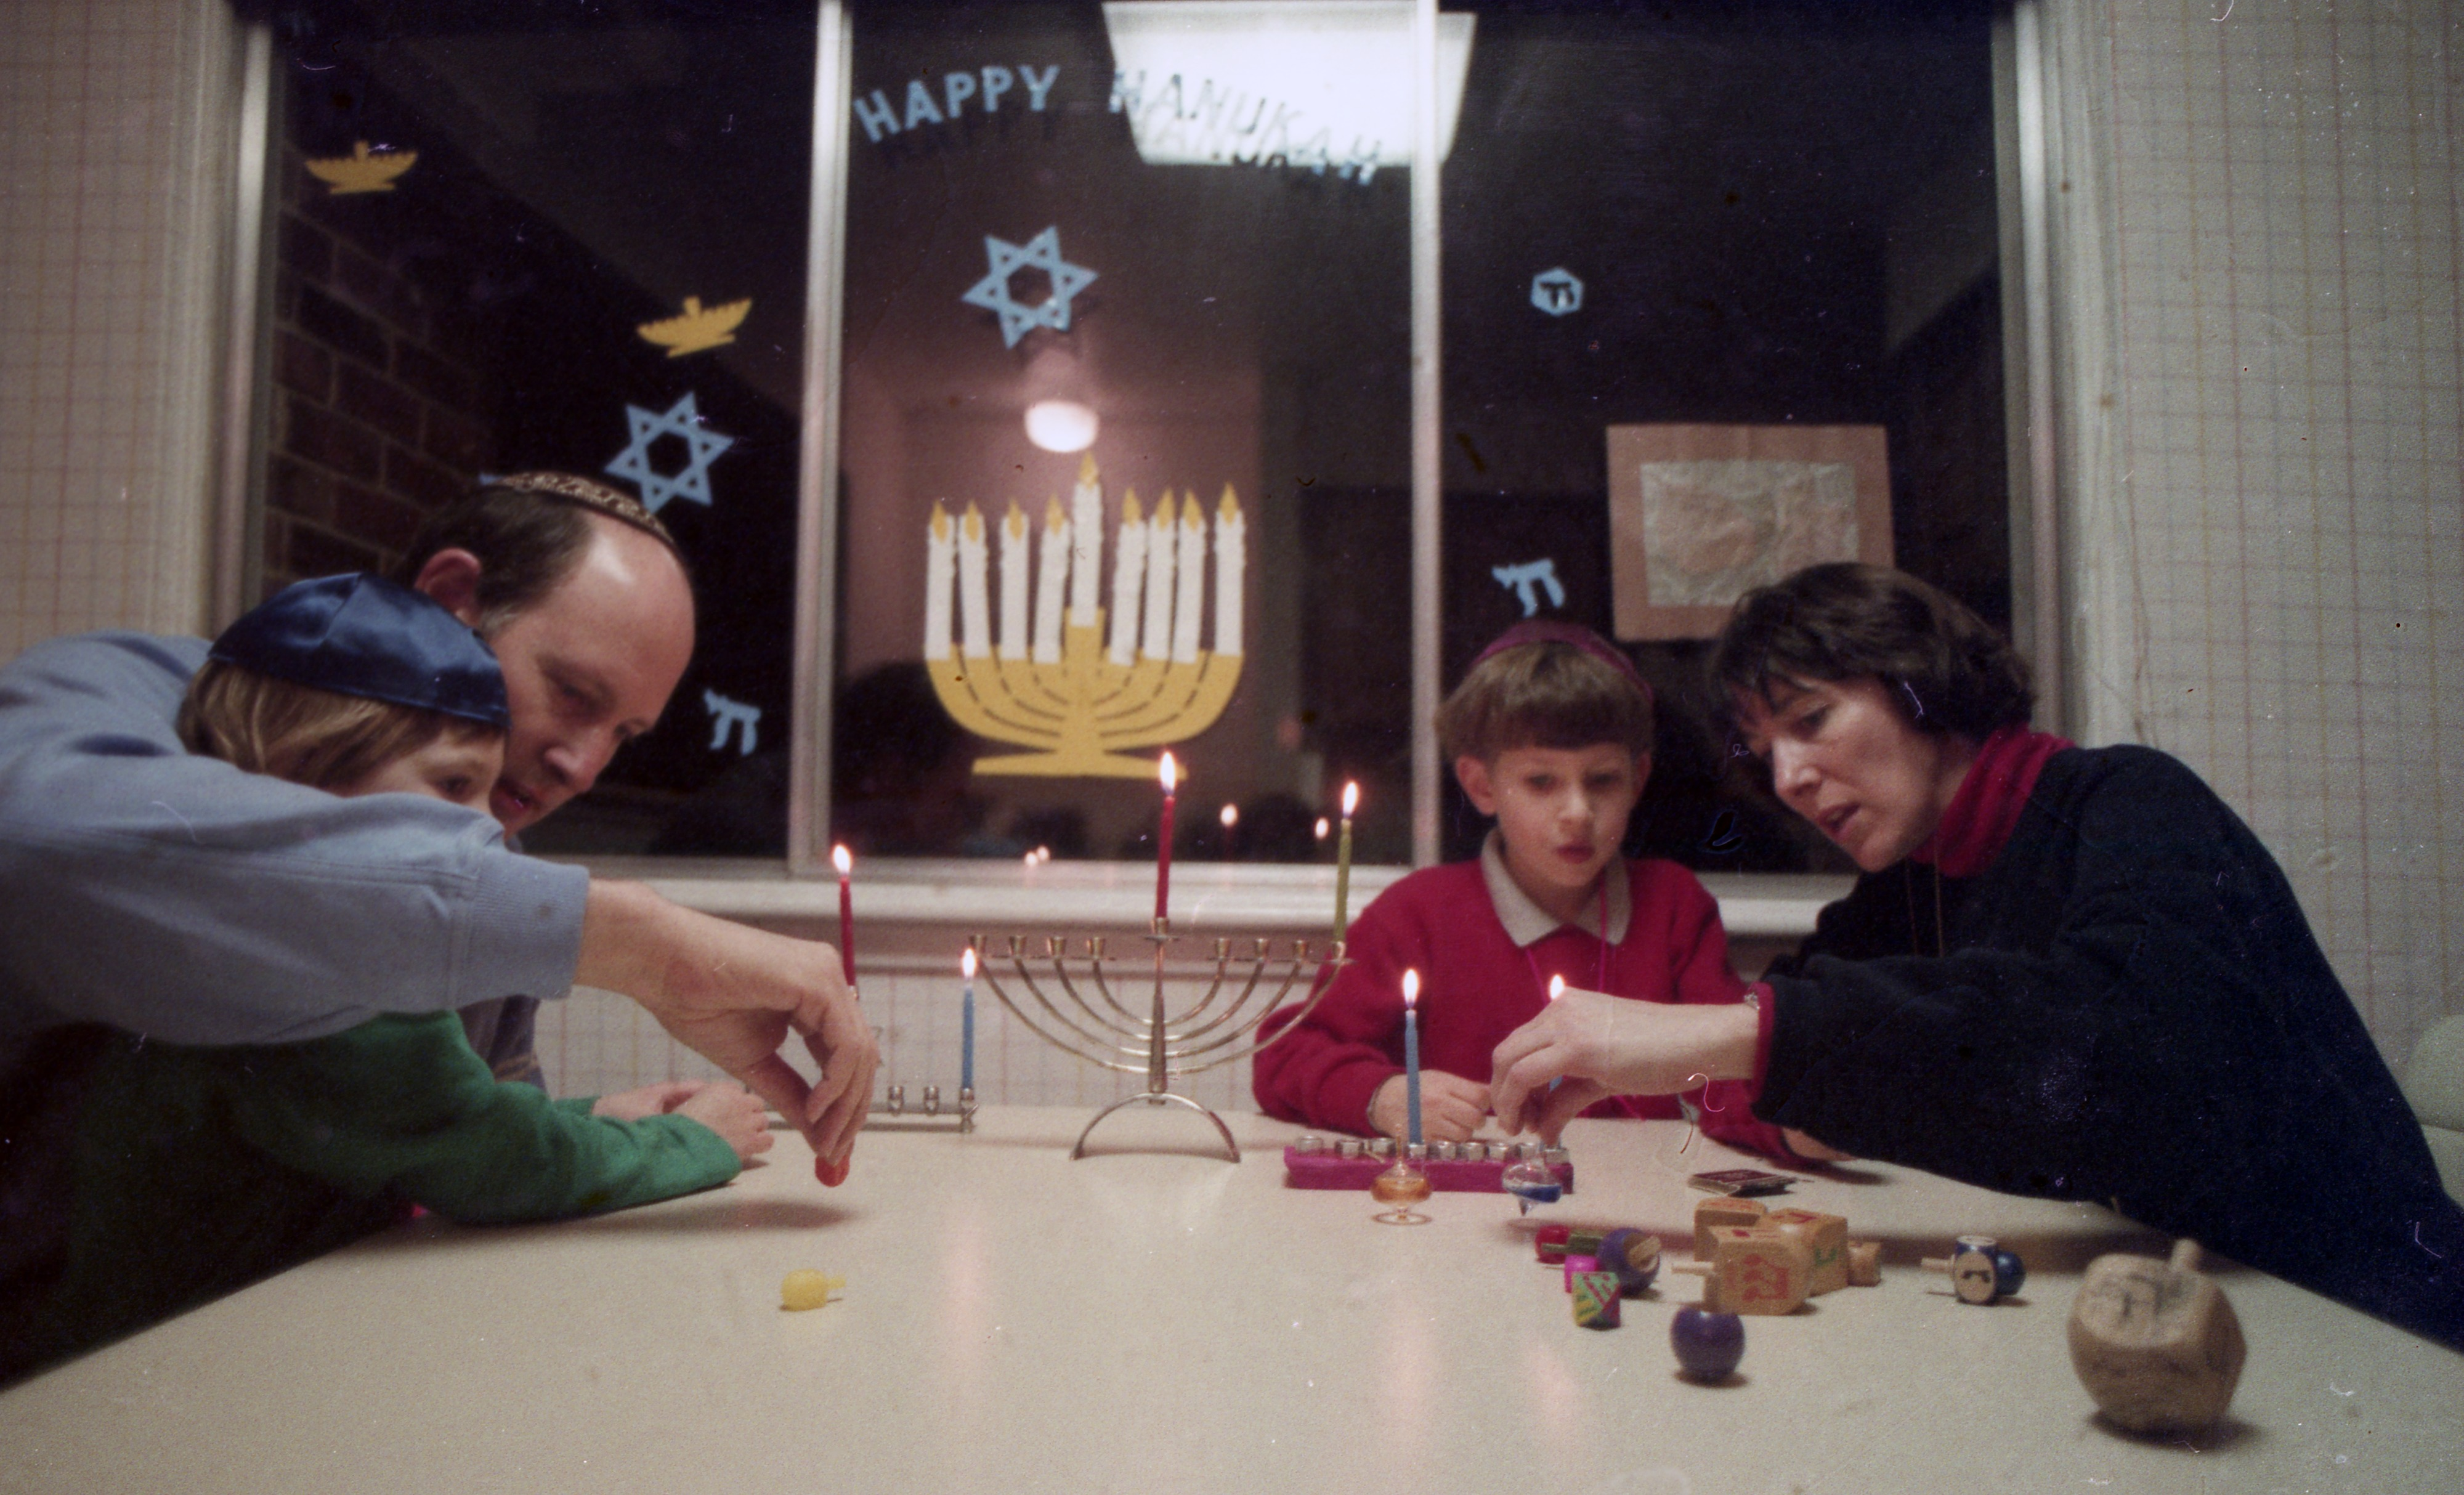 The Weiner Family Observes The Start Of Hanukkah, December 1993 image